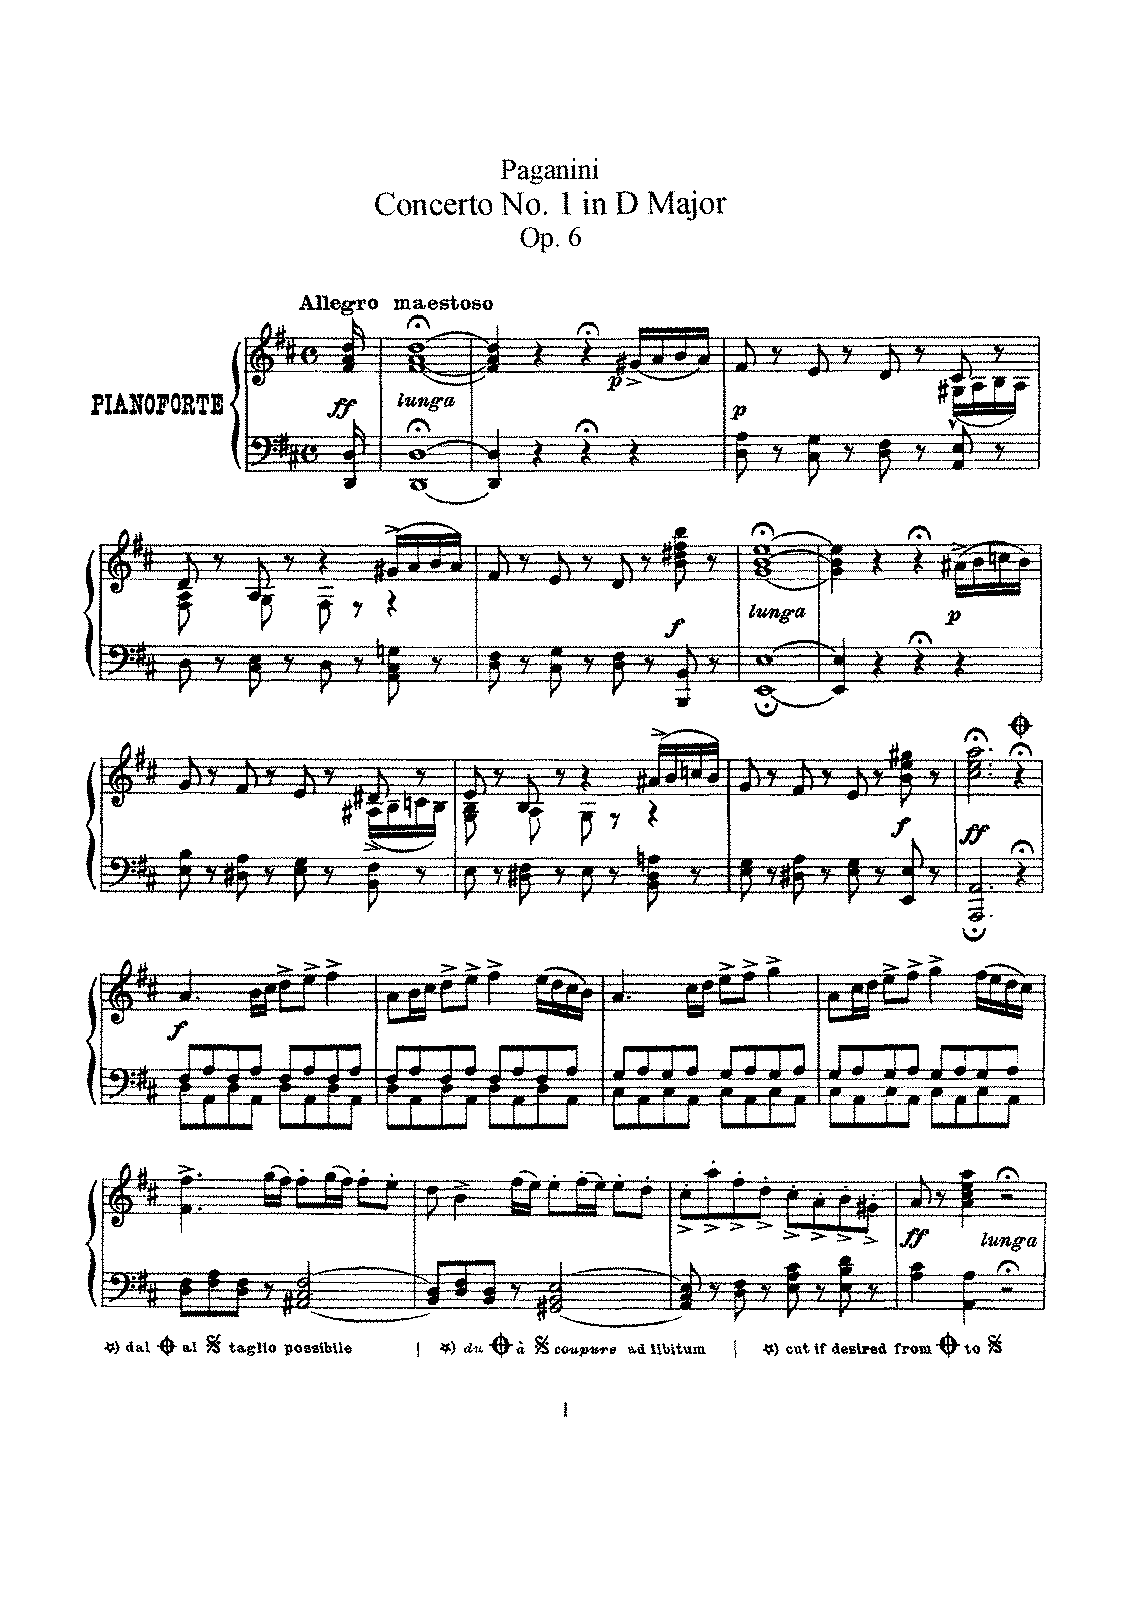 Paganini - Concerto No.1 in D major, op6..pdf